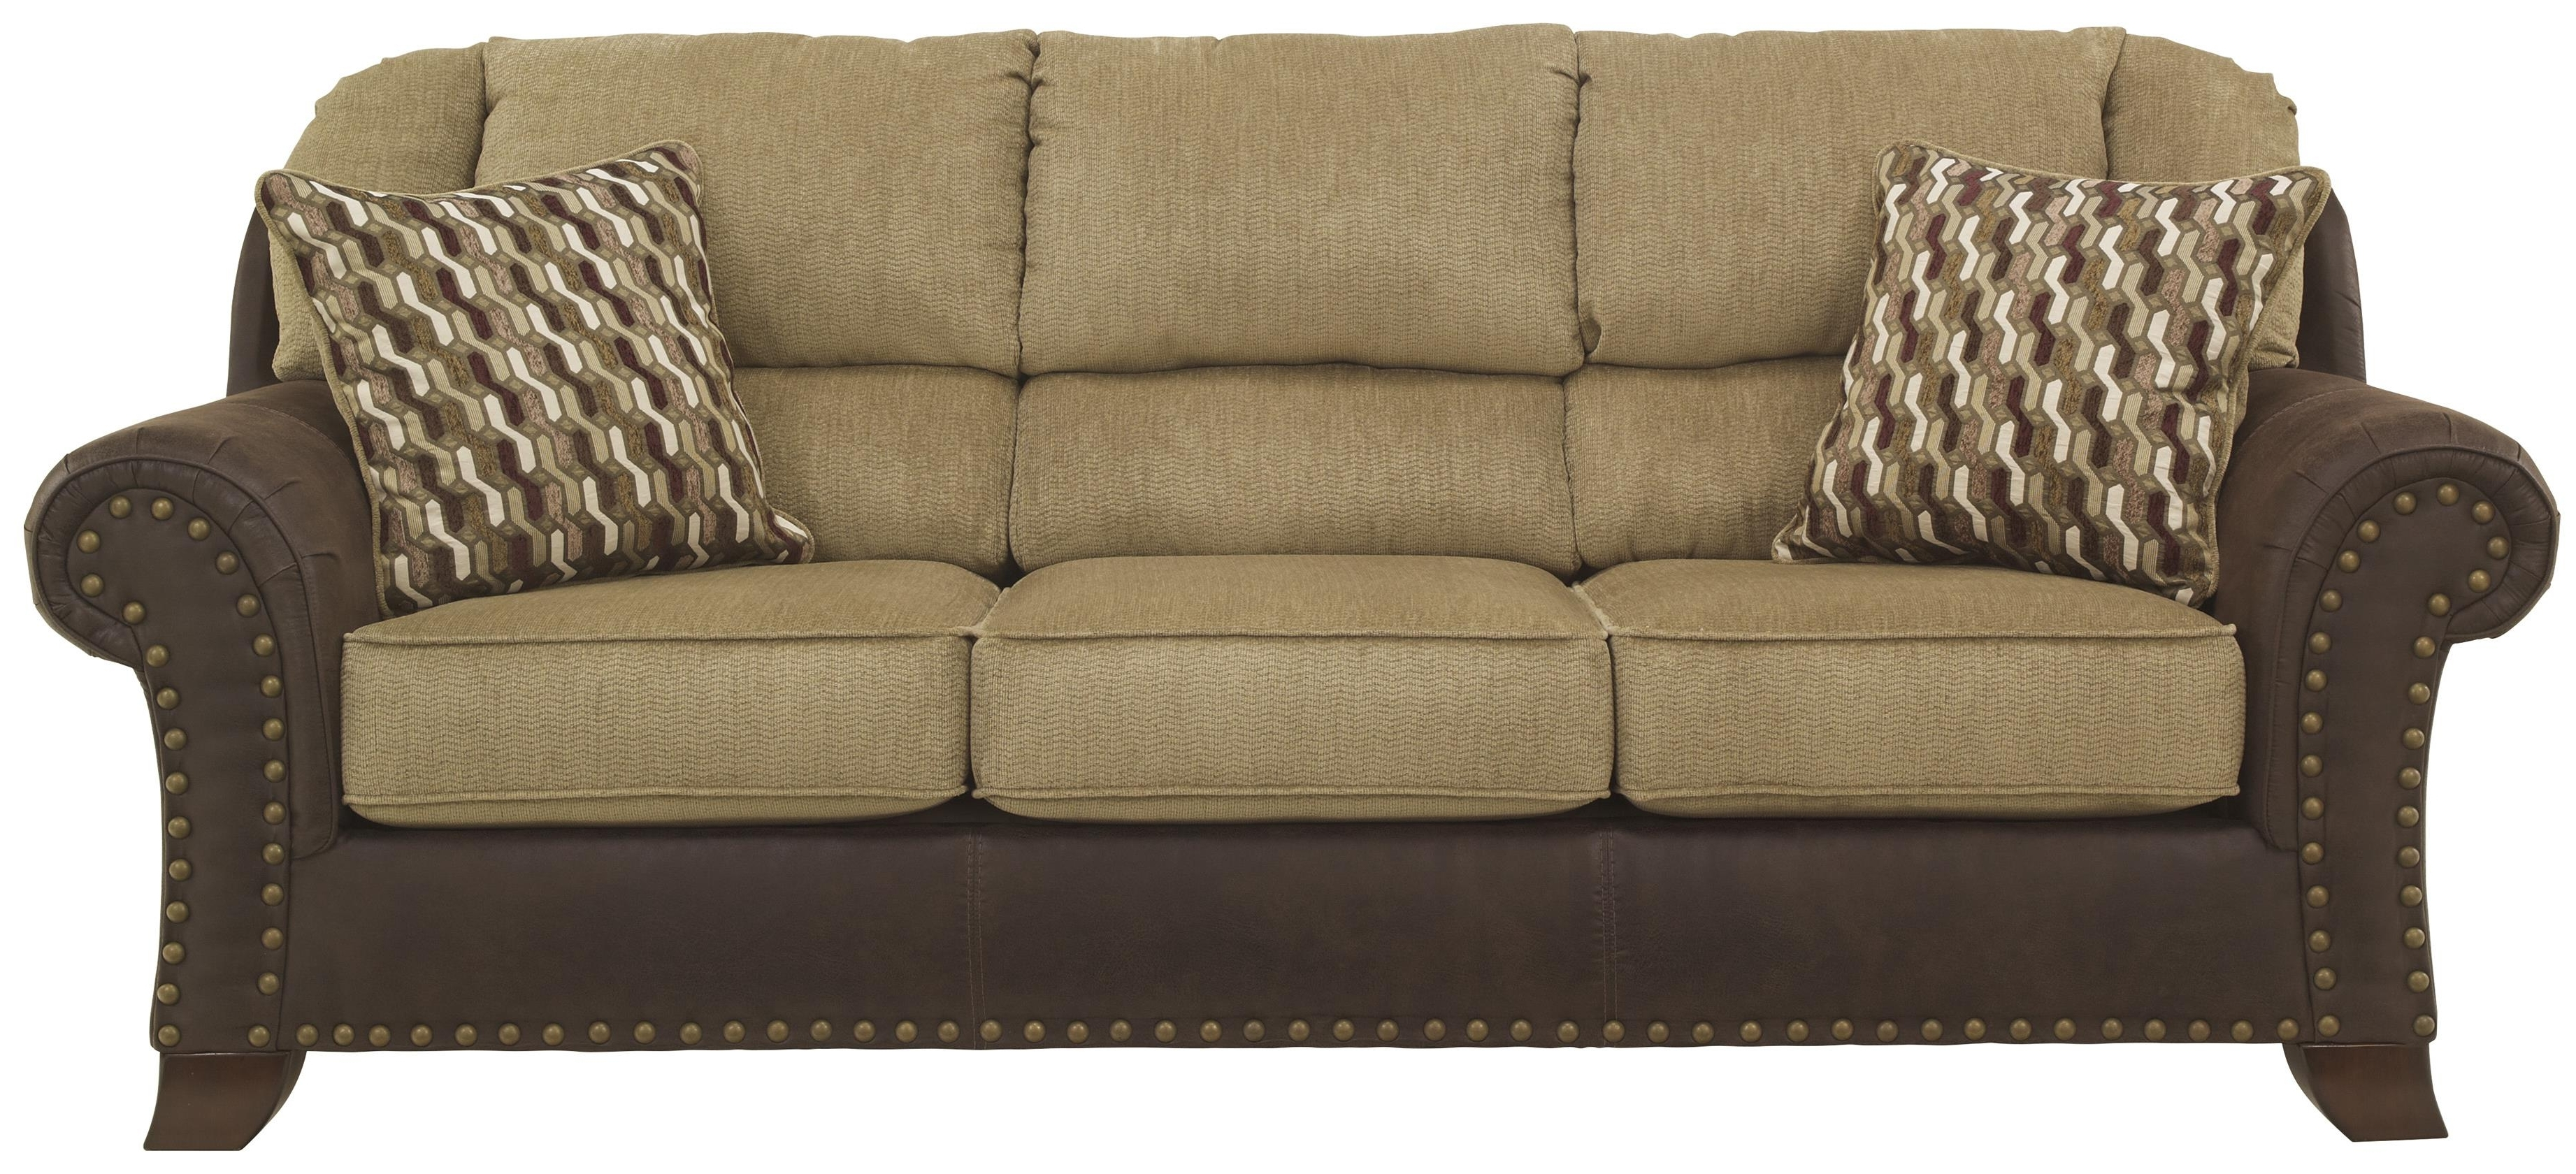 Two Tone Sofas Regarding Well Liked Two Tone Sofa With Chenille Fabric/faux Leather Upholstery (View 12 of 20)